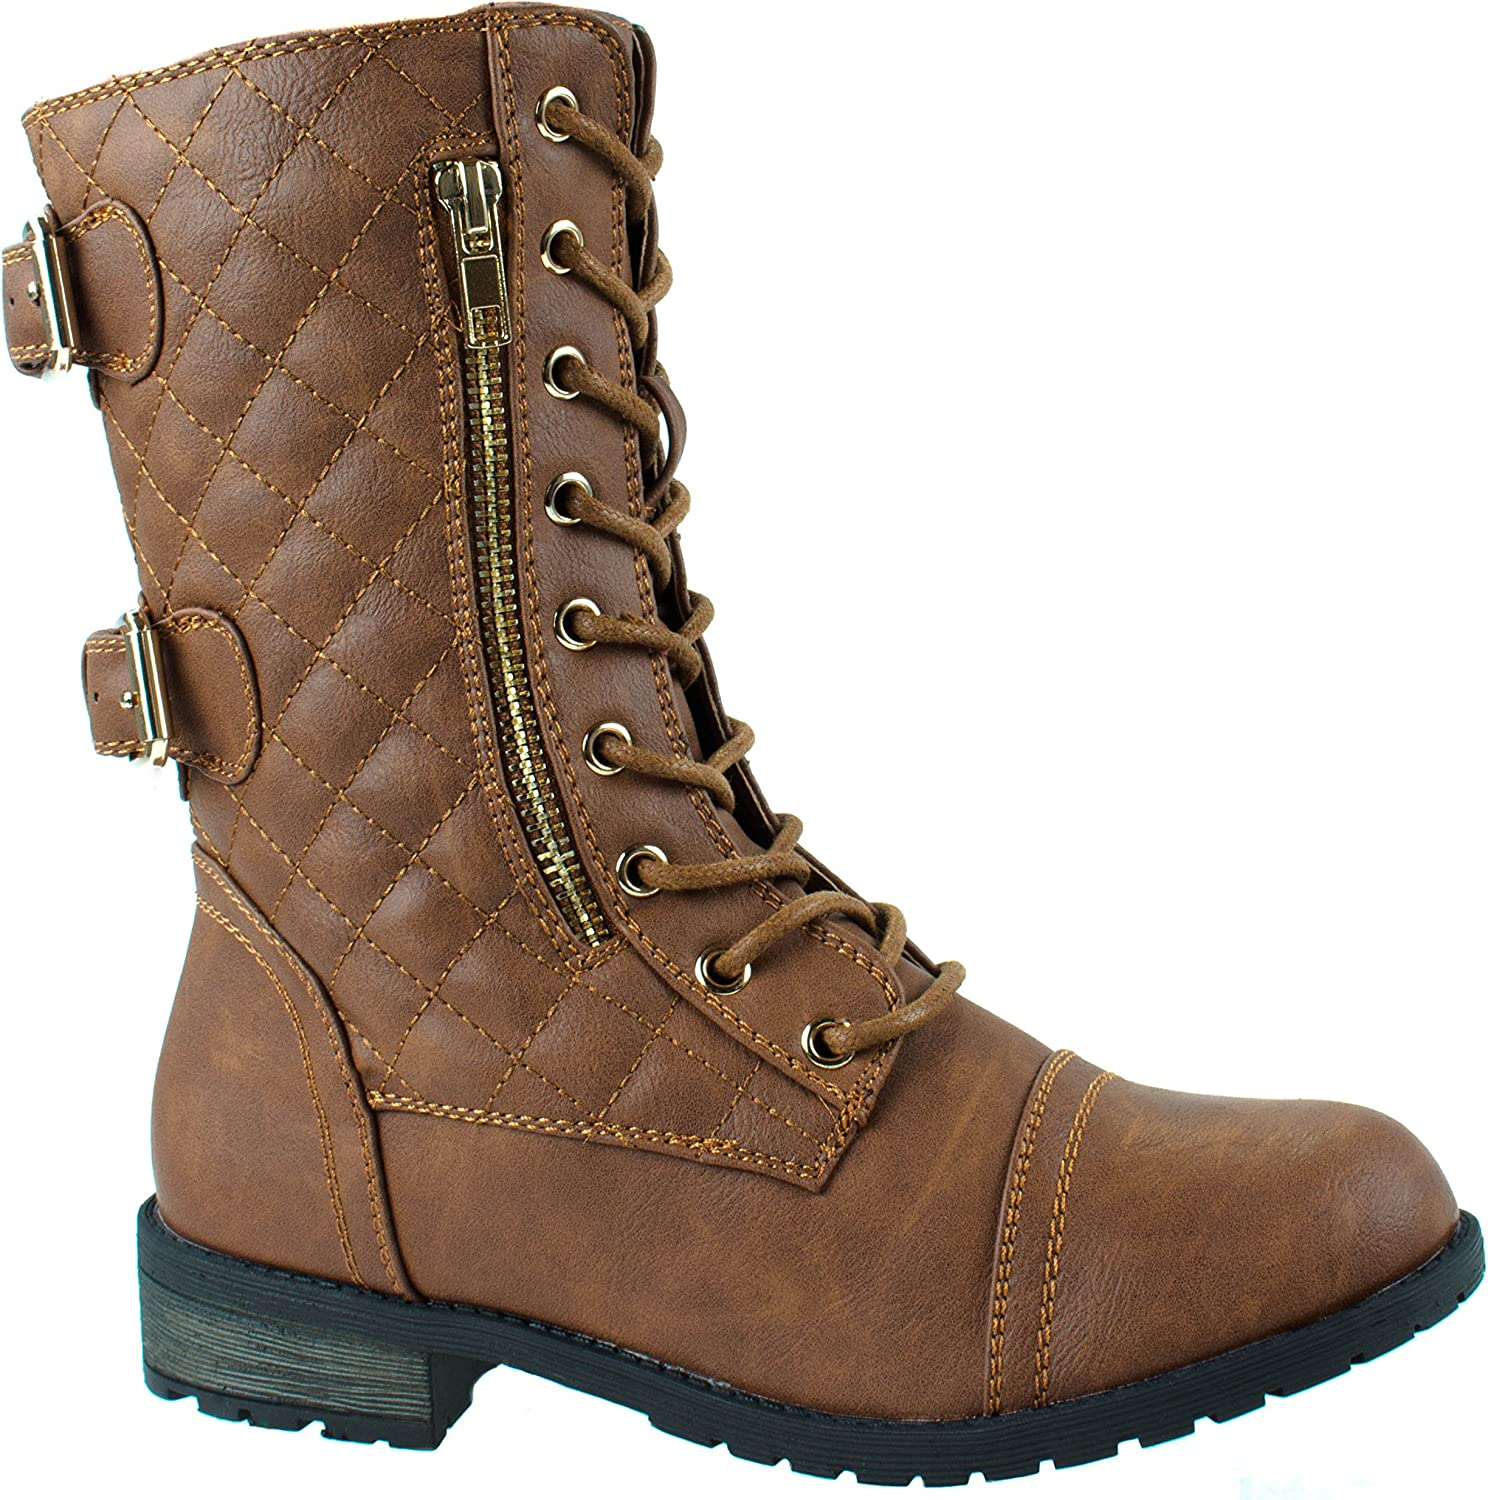 Forever Women's Mango-79 Military Leatherette Dual Buckle Zipper Lace Up Mid Calf Boots